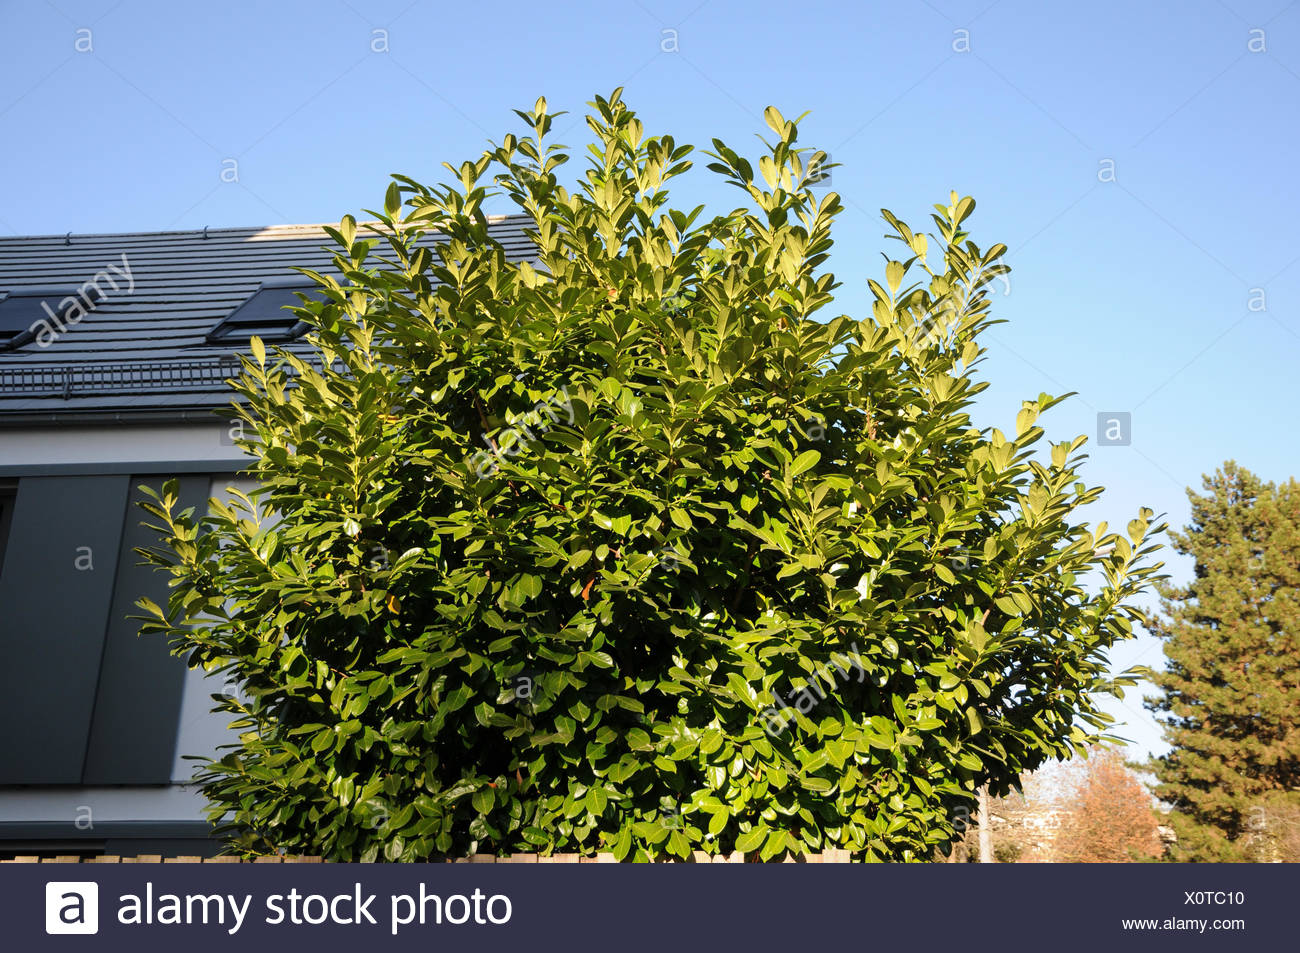 Prunus laurocerasus, Laurel cherry - Stock Image